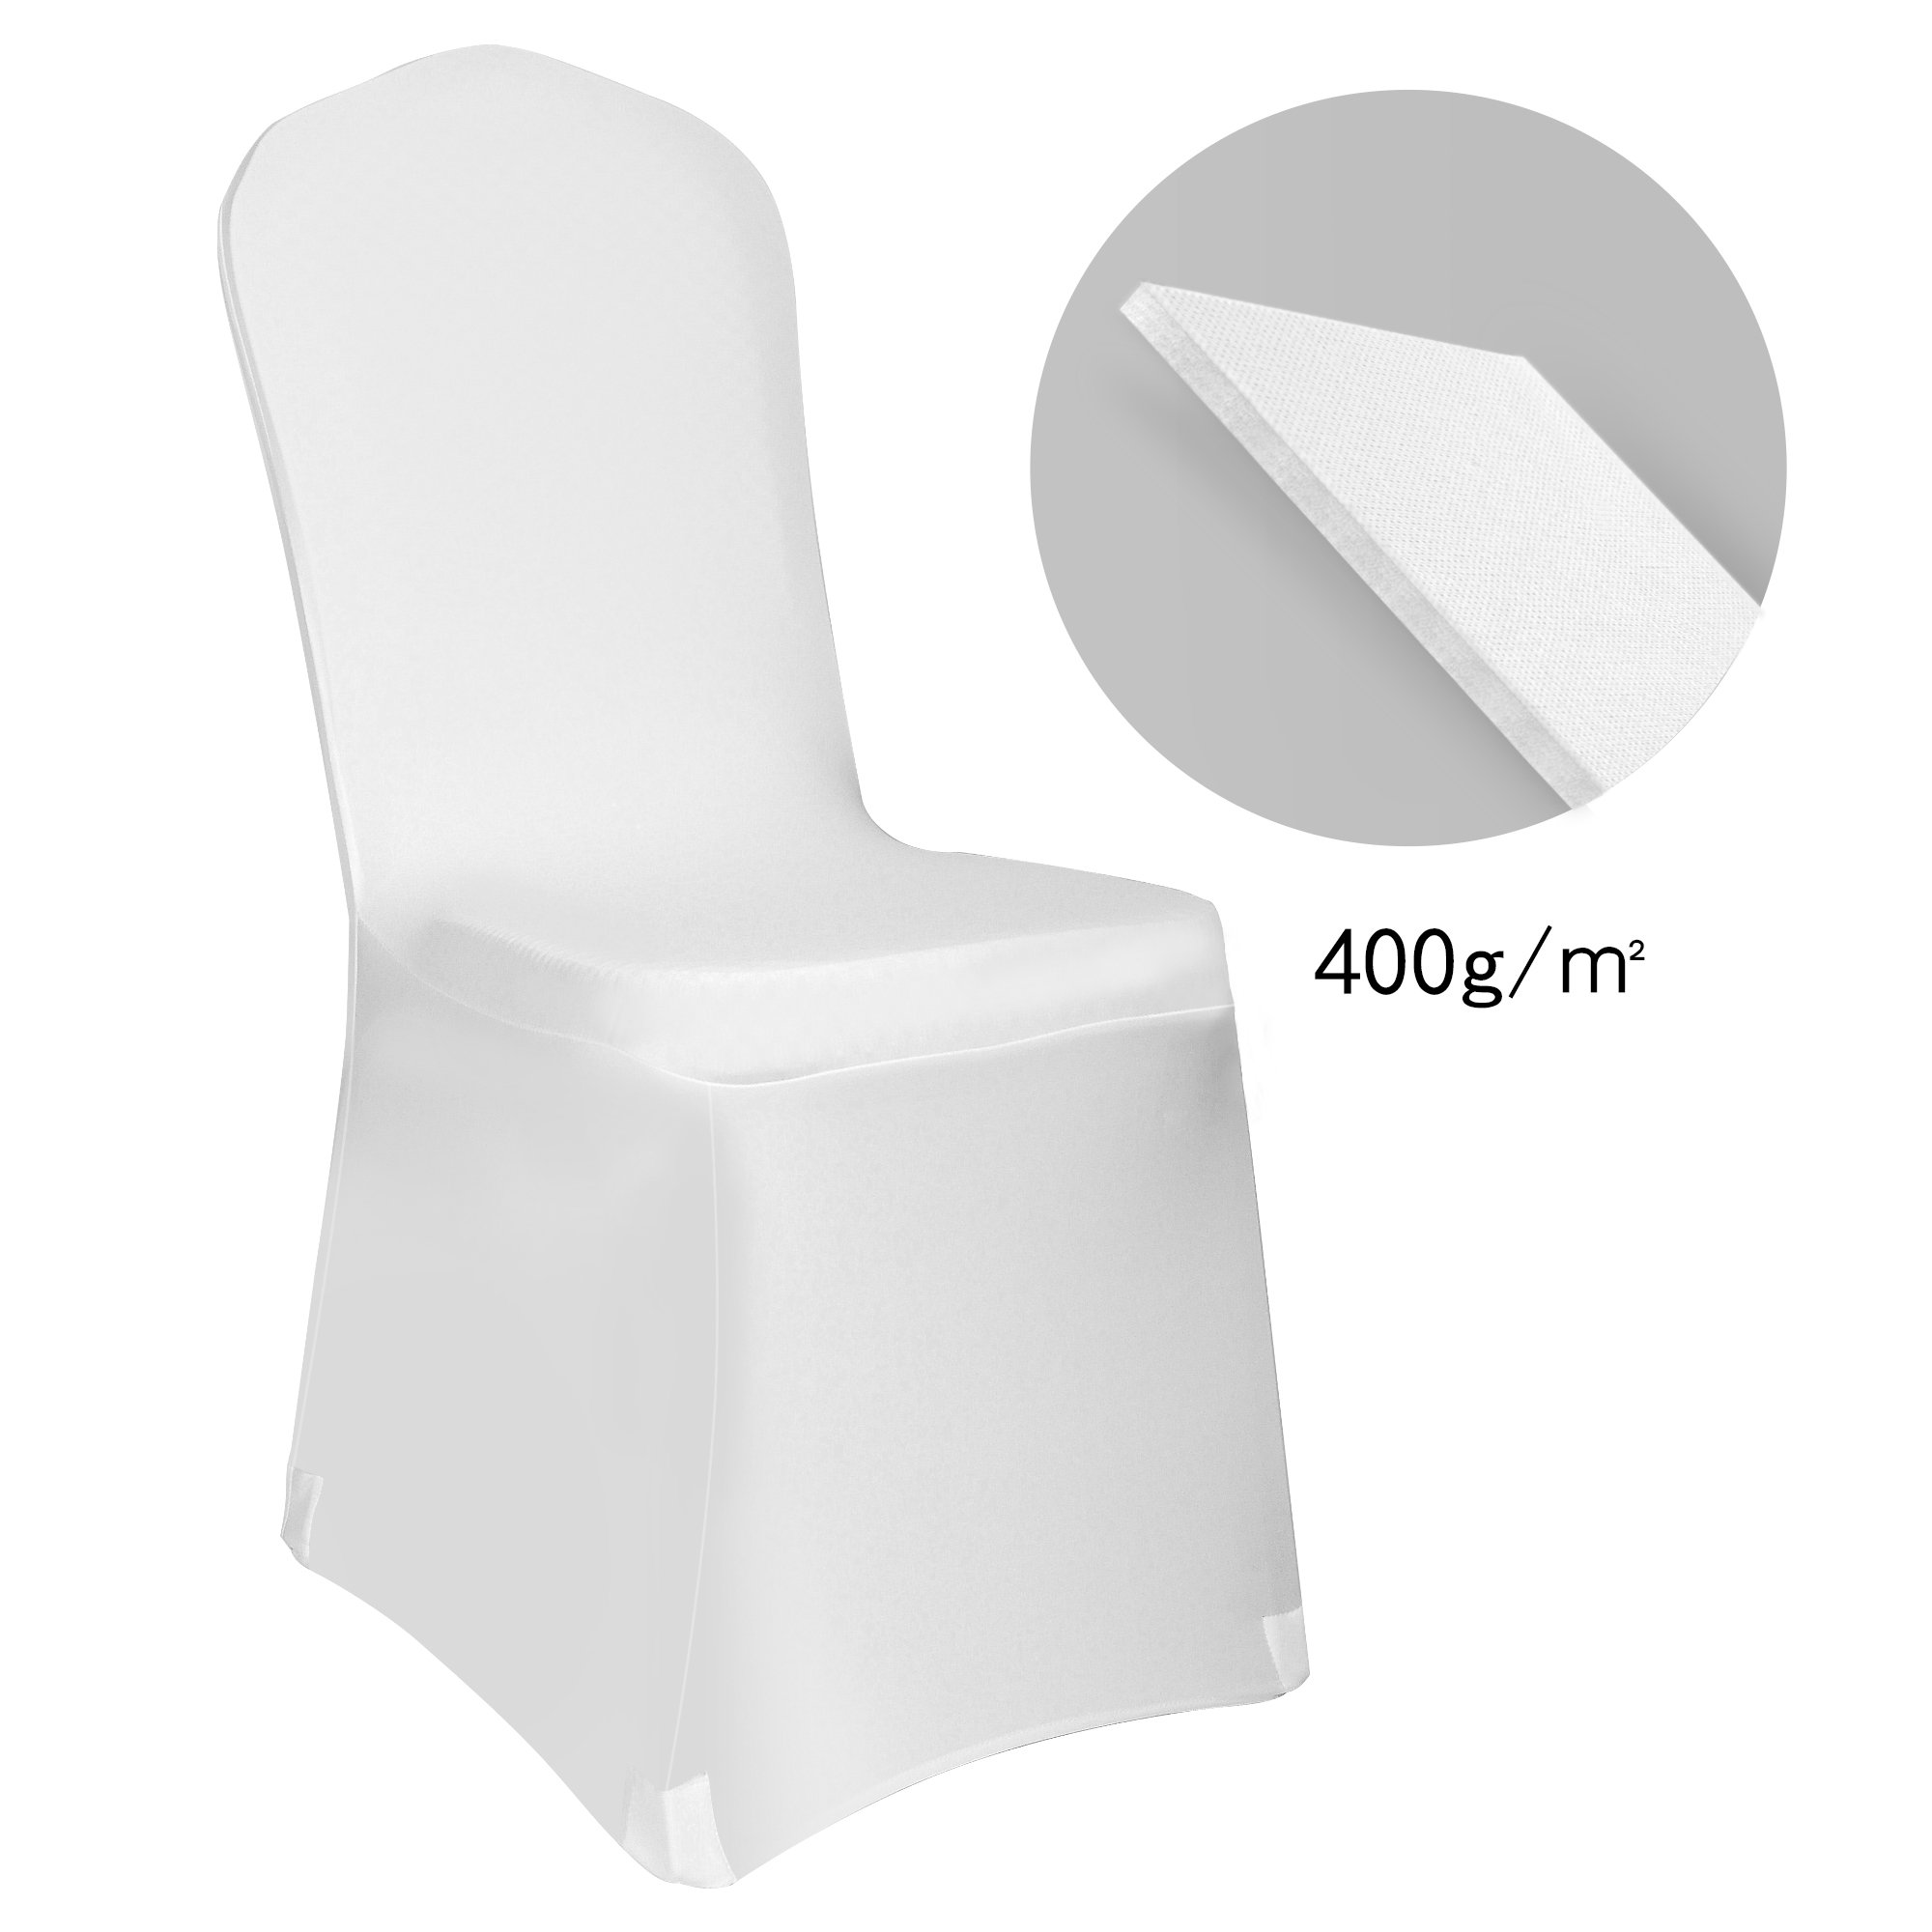 EMART Set of 12pcs White Polyester Spandex Chair Covers, Durable and Thick Folding Chair Covers for Banquet Wedding Party